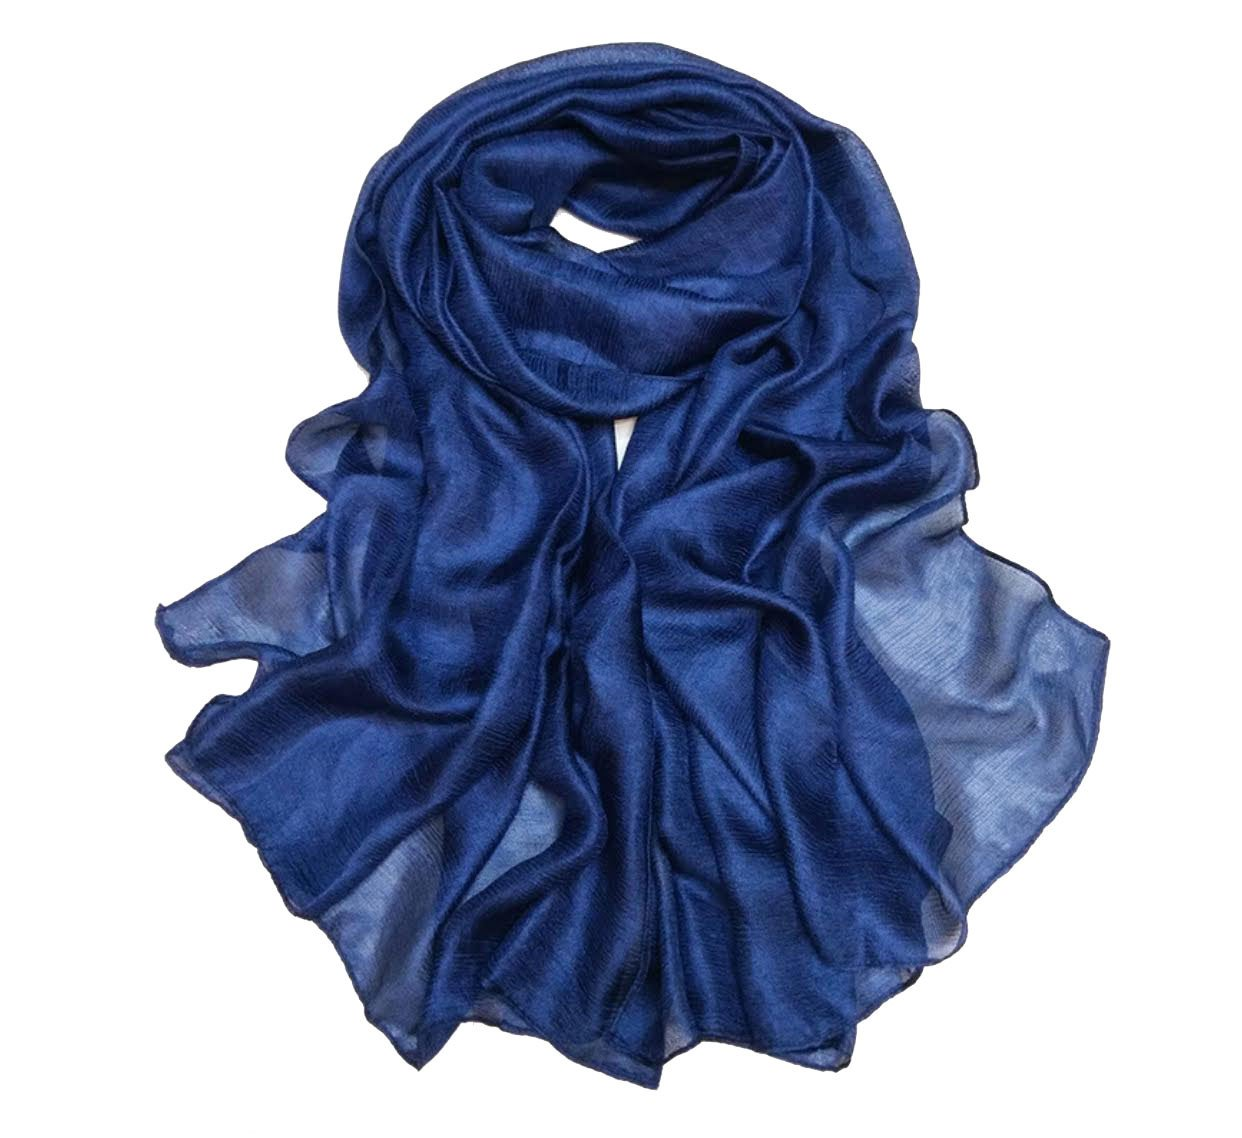 Luxury Silky shimmer Lightweight Solid Color Fashion scarves Hijab For Women (Blue)